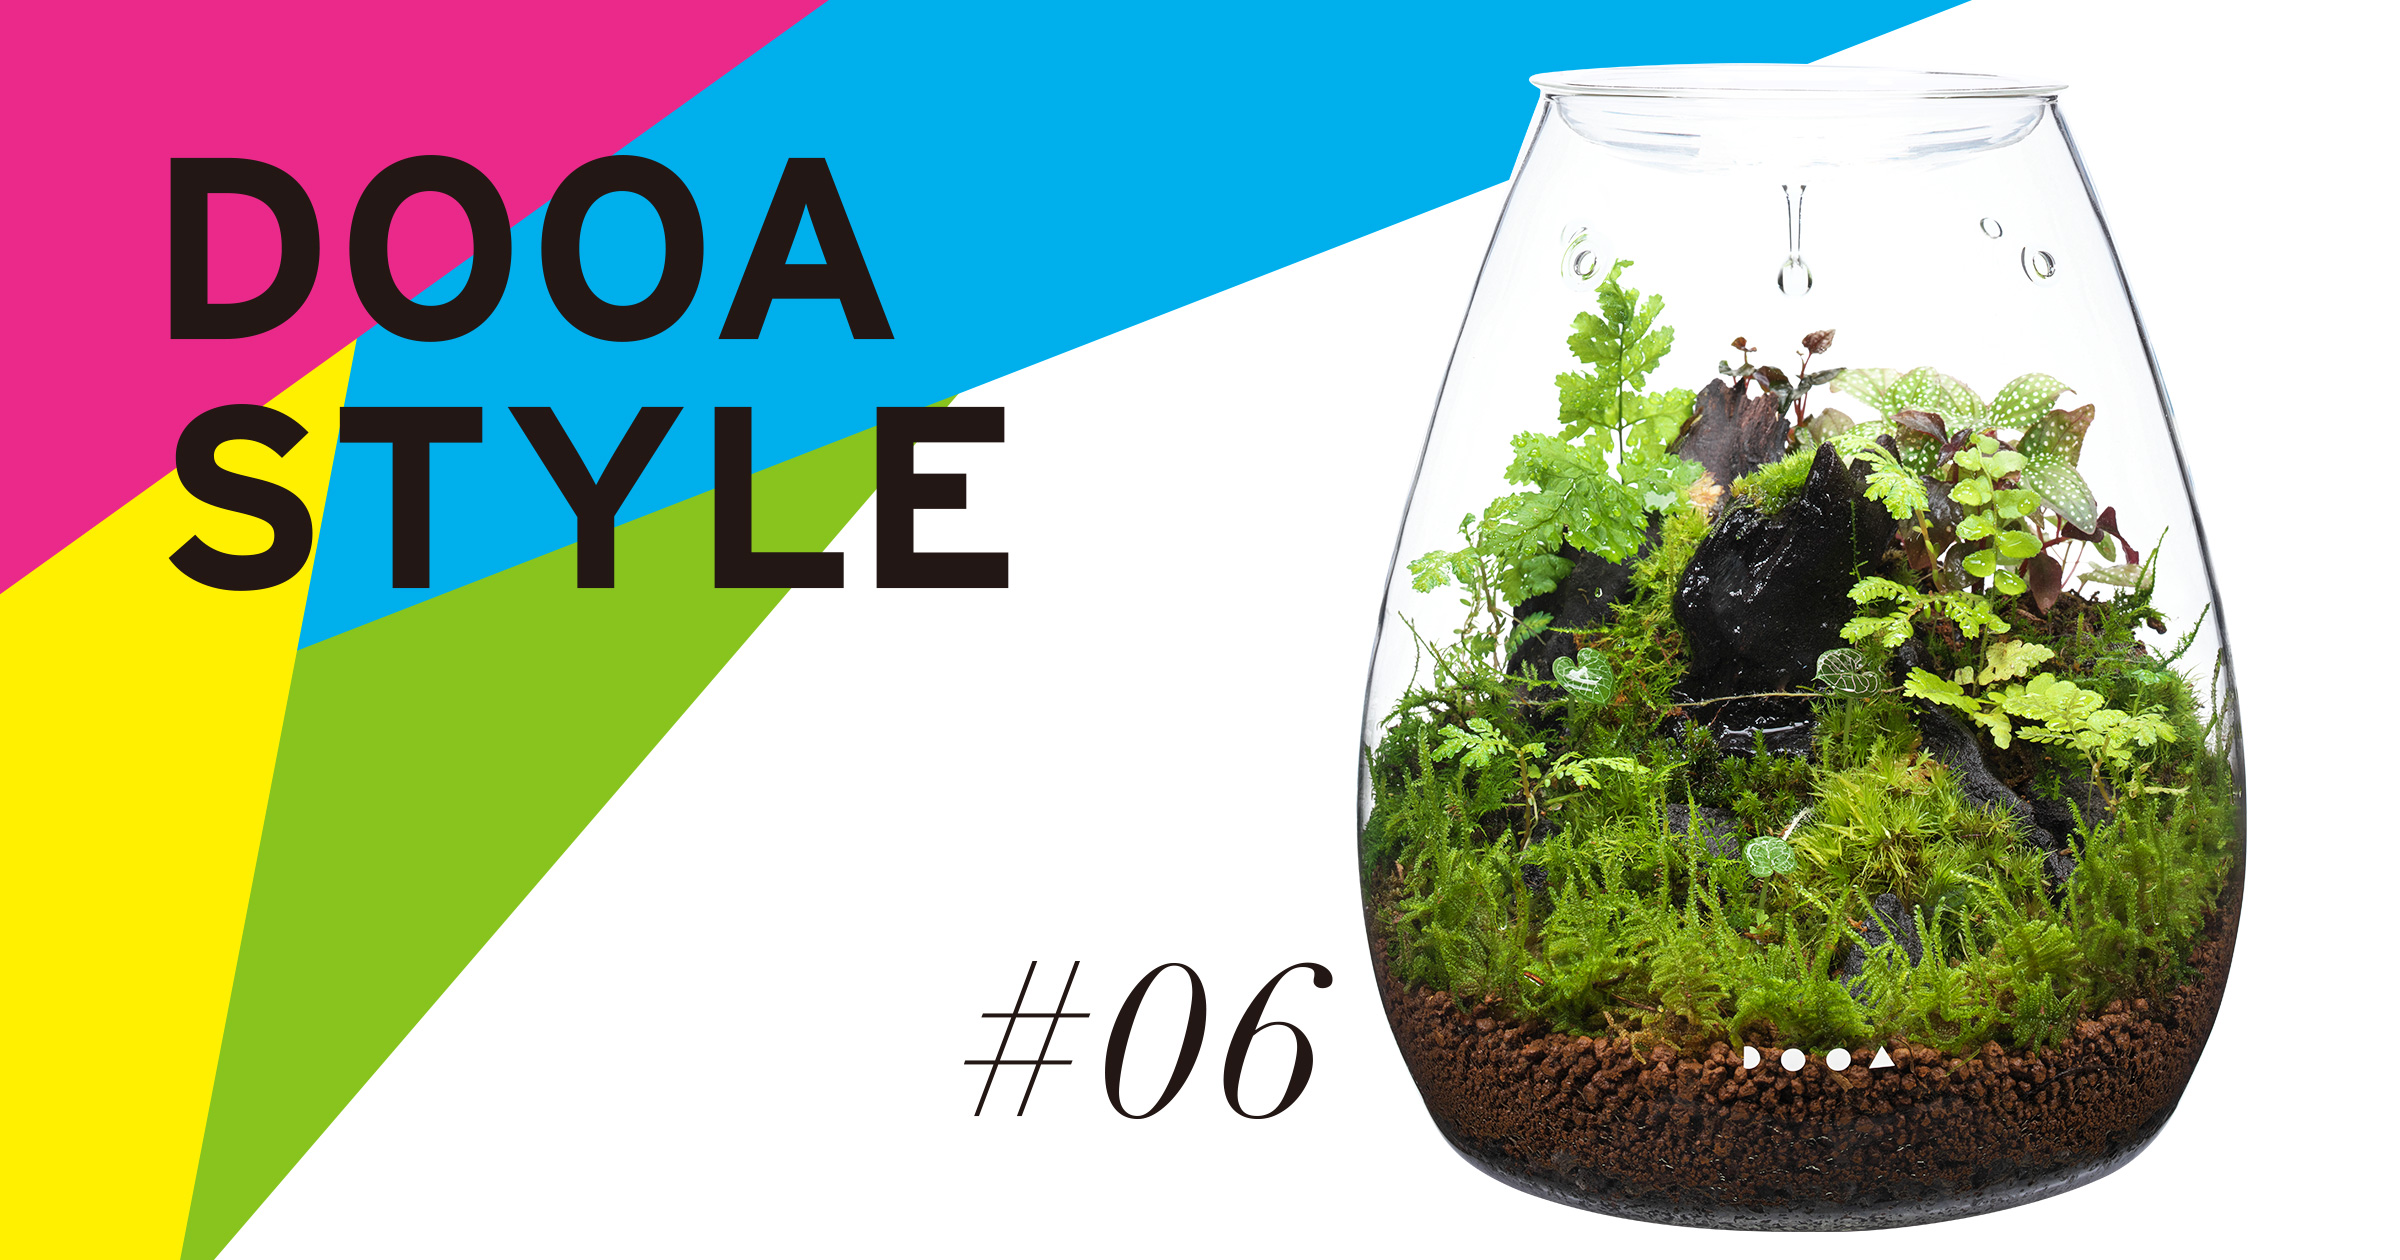 DOOA STYLE #6  'The needs of tiny living things growing in a small space'